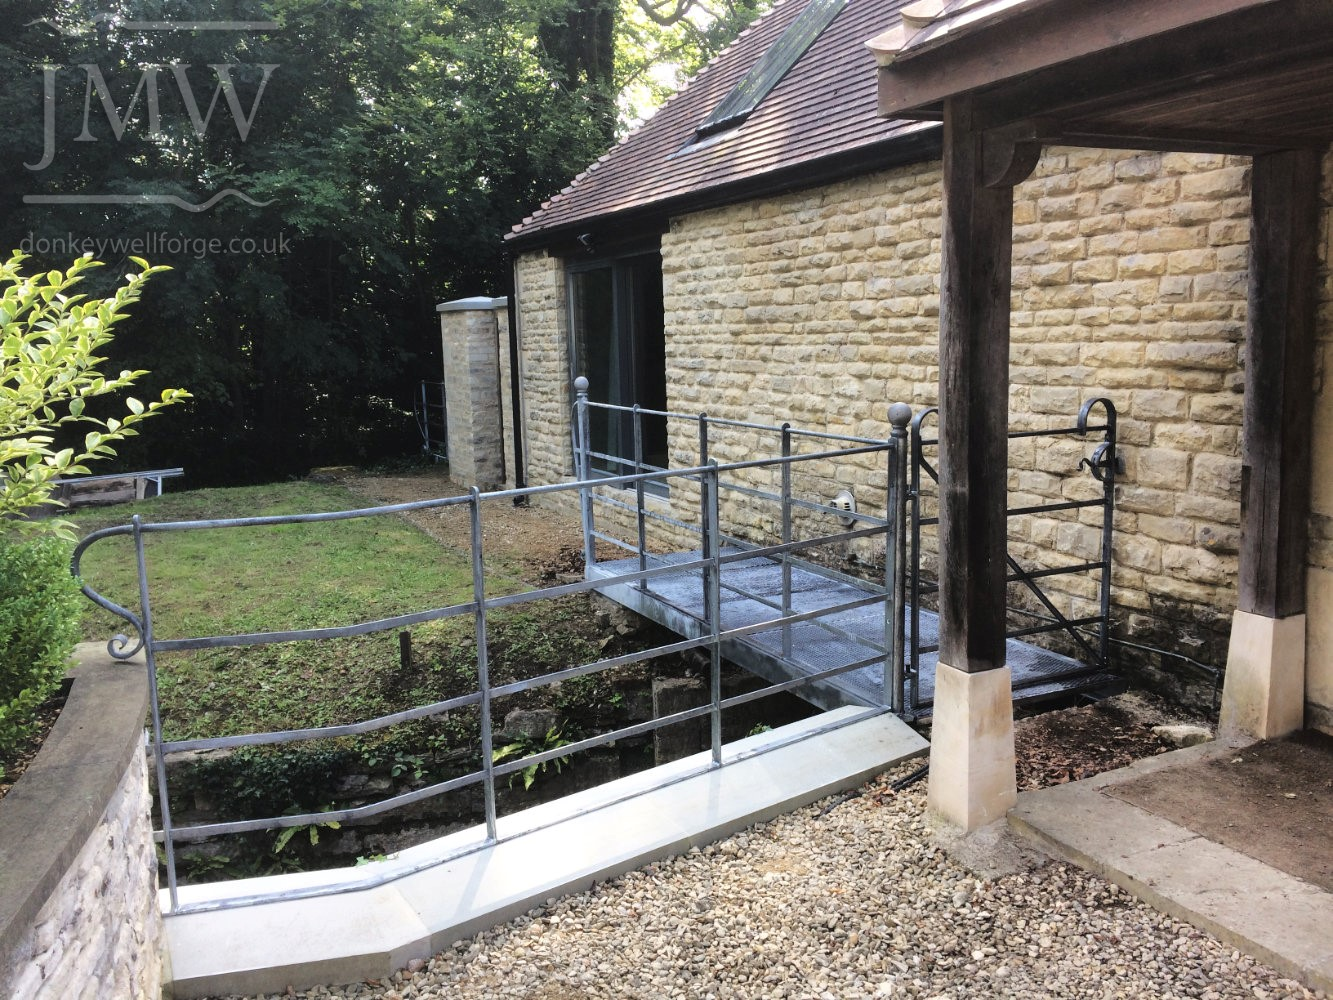 river-railing-bridge-gate-iron-cotswolds-architectual